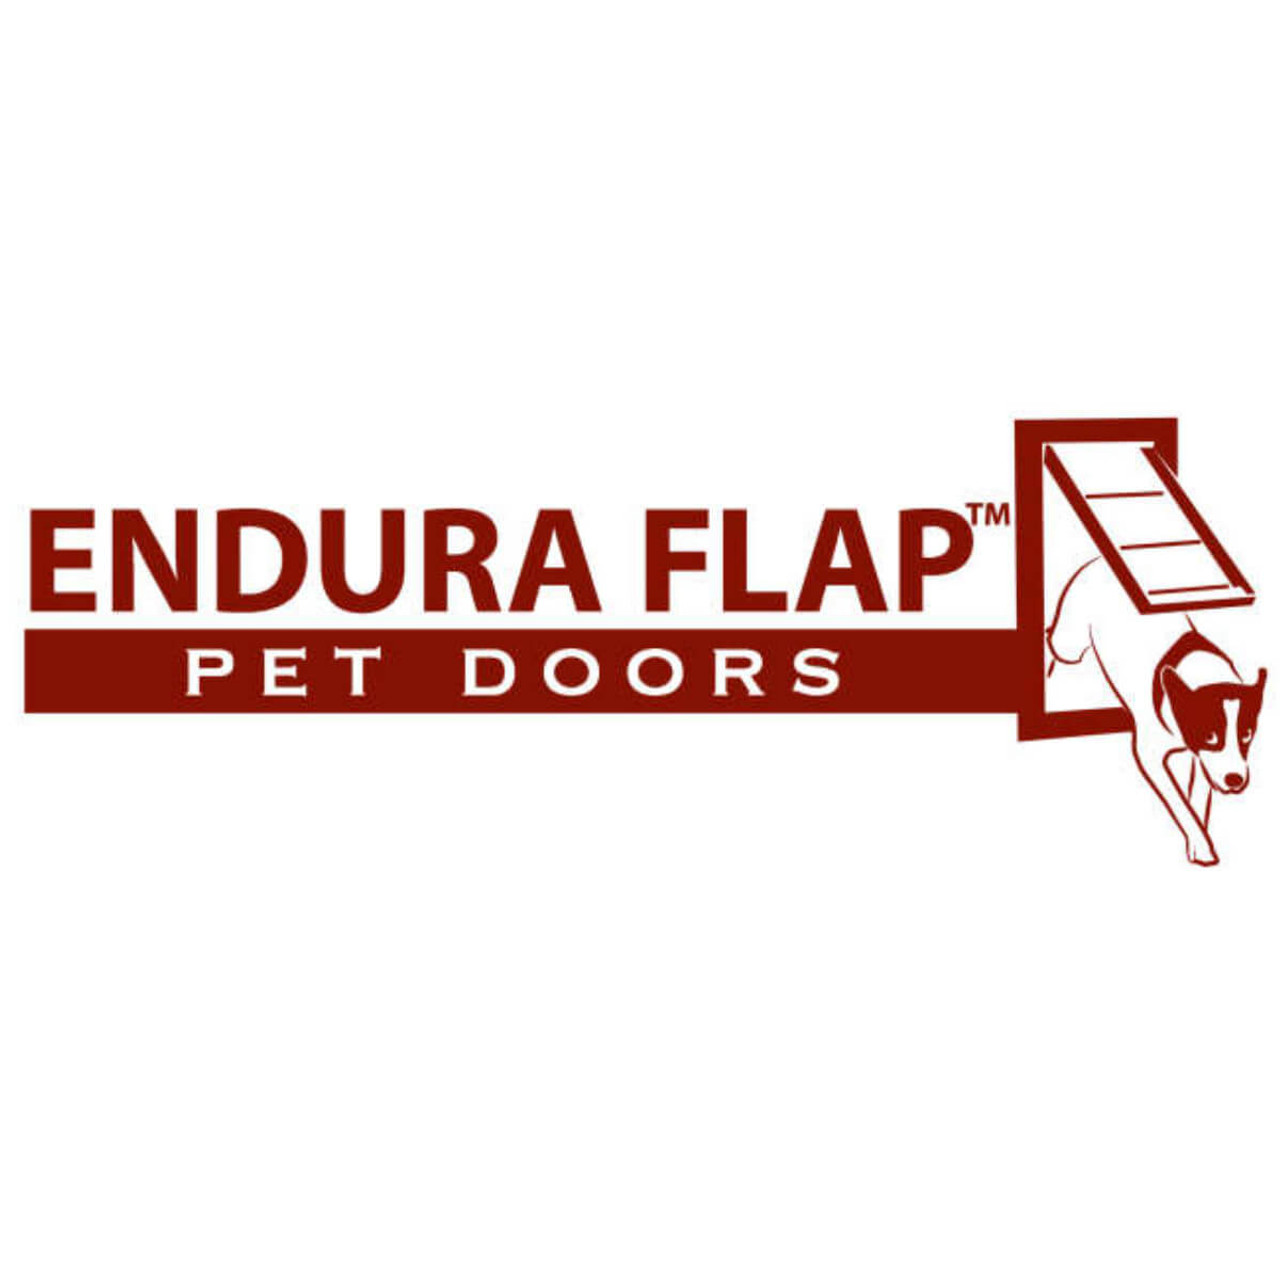 Endura Flap pet doors have durable hollow insulated flaps with magnets all the way down the sides and across the bottom